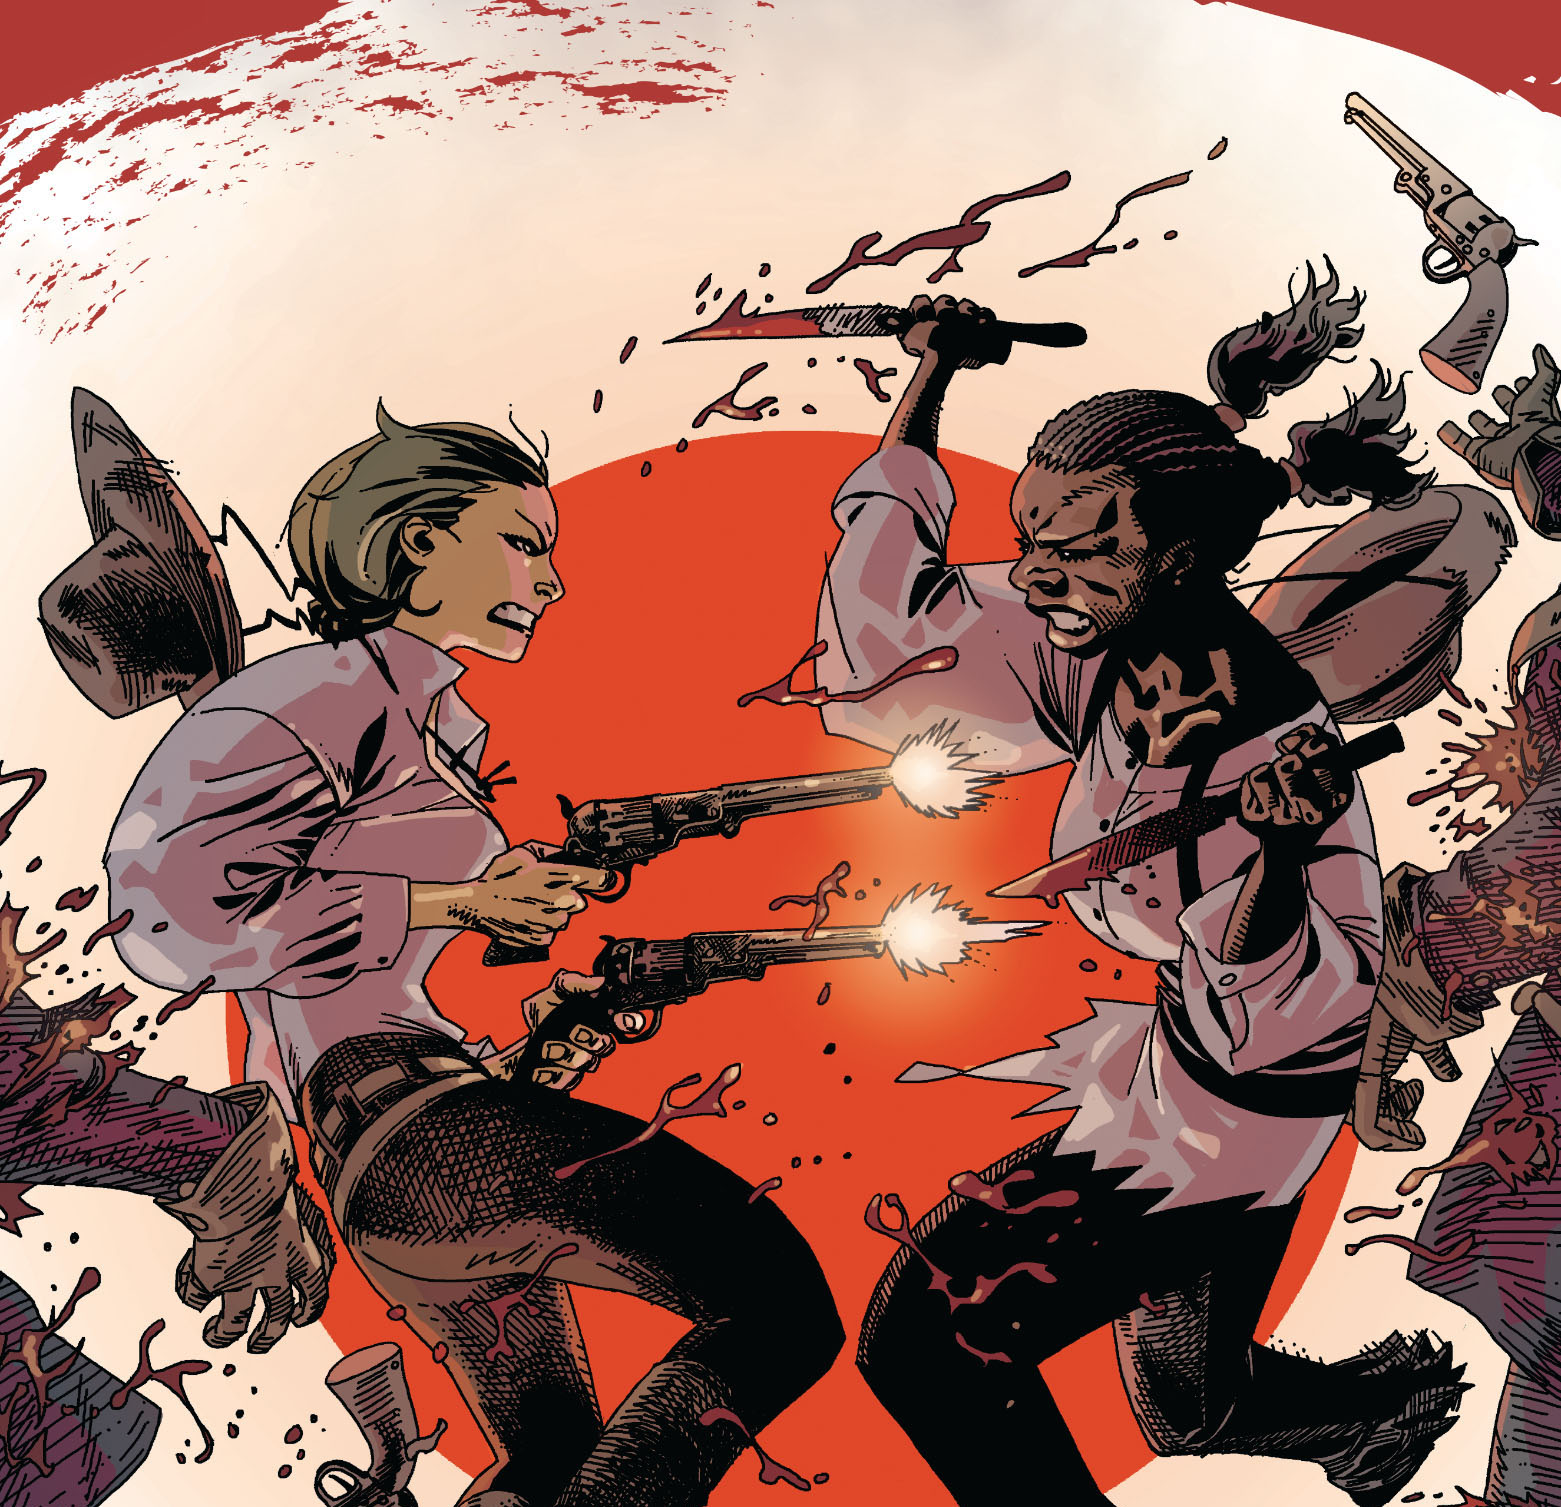 The debut creators discuss their deeply emotional tale of vengeance set during the Civil War.